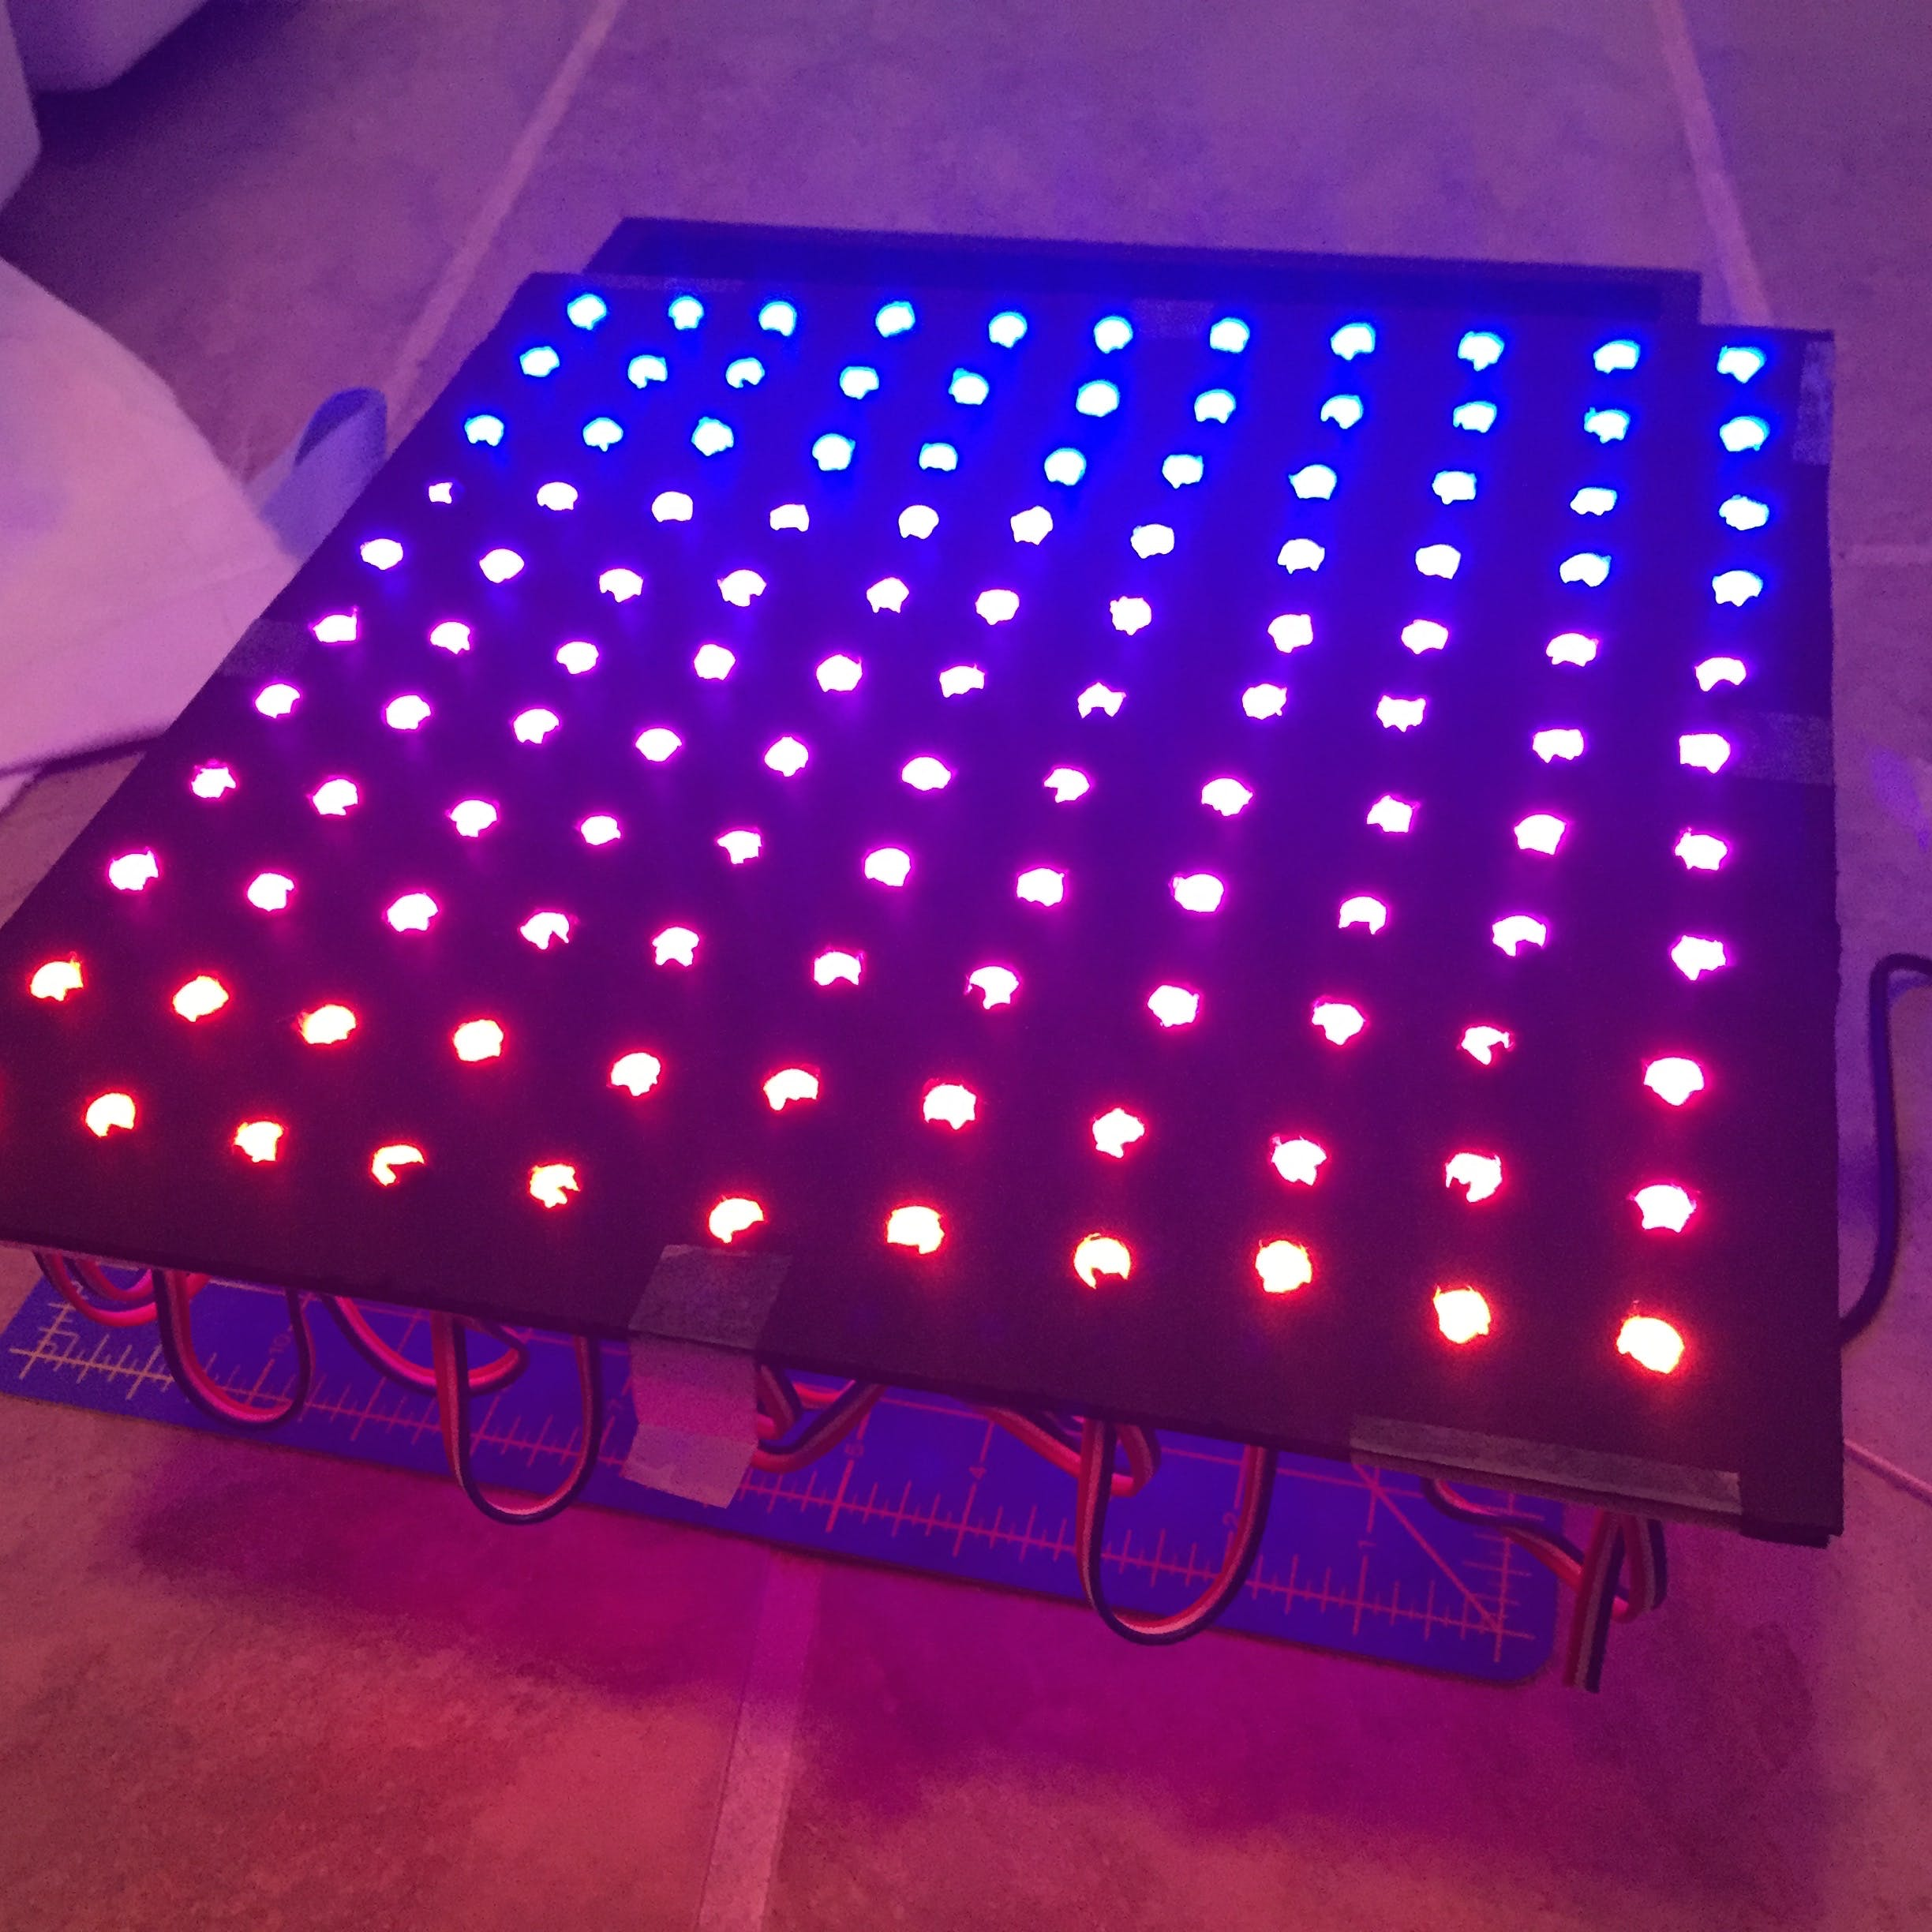 LEDs poking through the foamboard